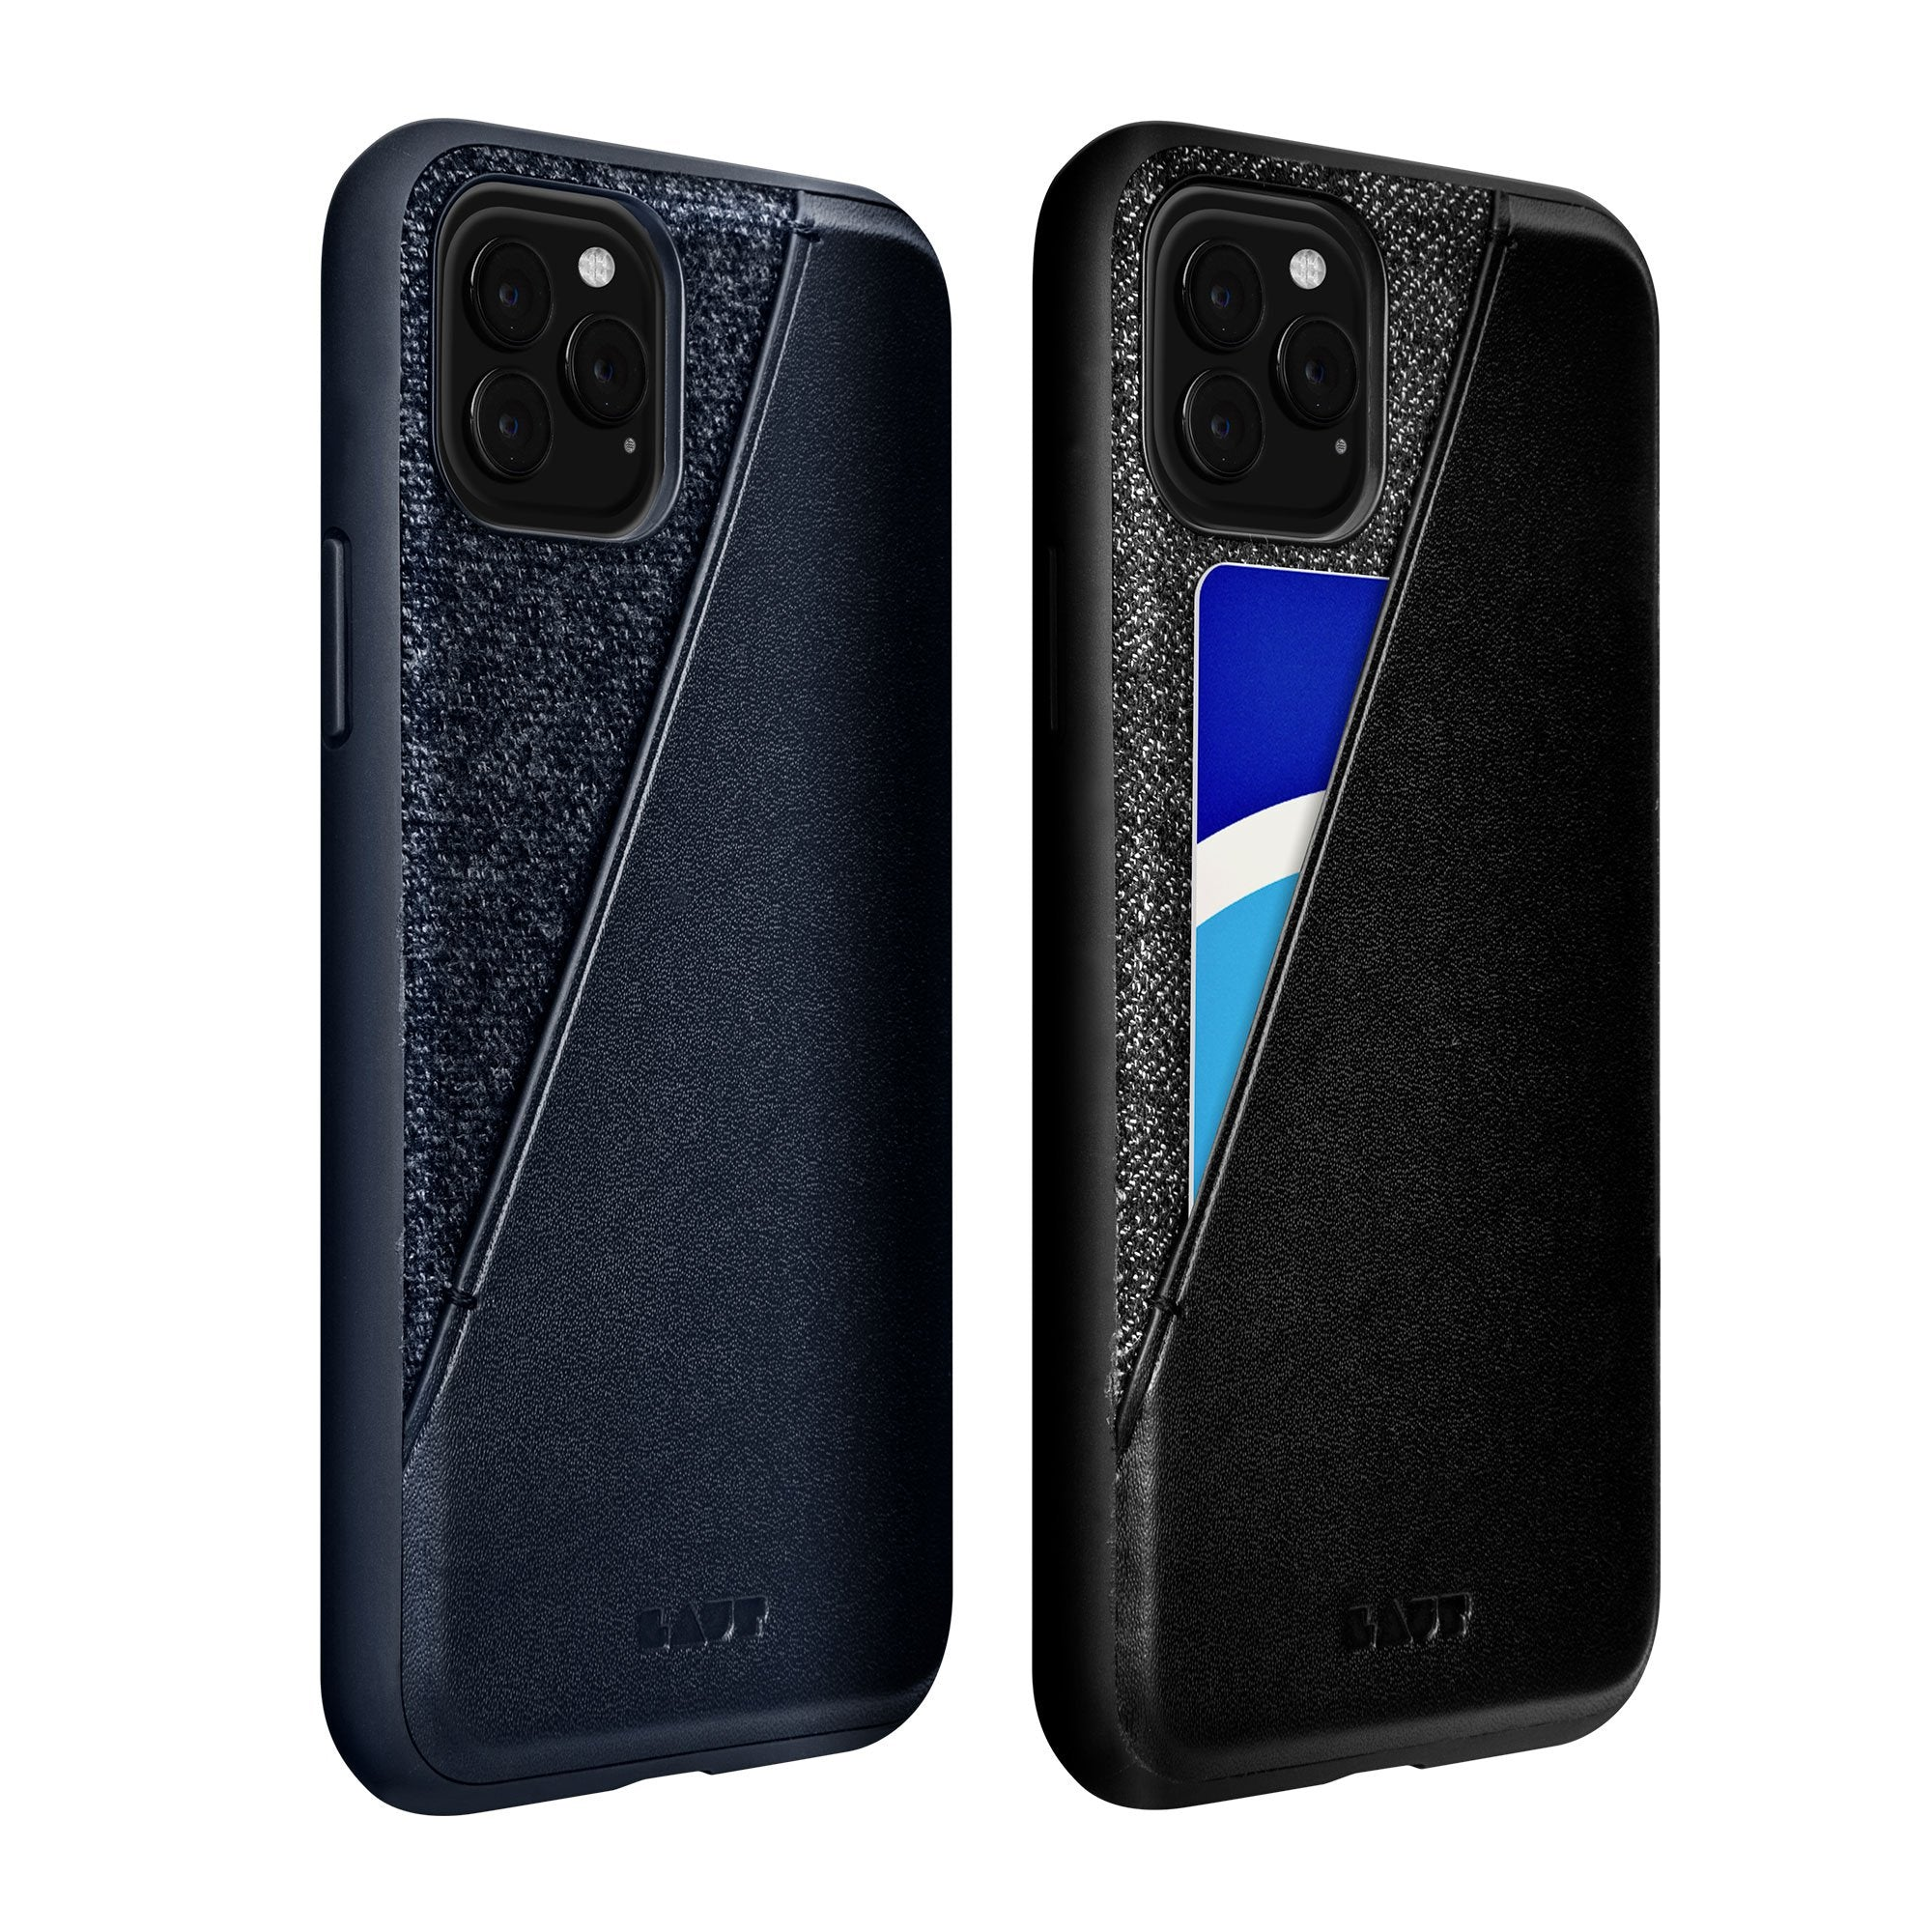 LAUT-INFLIGHT CARD CASE for iPhone 11 Series-Case-iPhone 11 / iPhone 11 Pro / iPhone 11 Pro Max